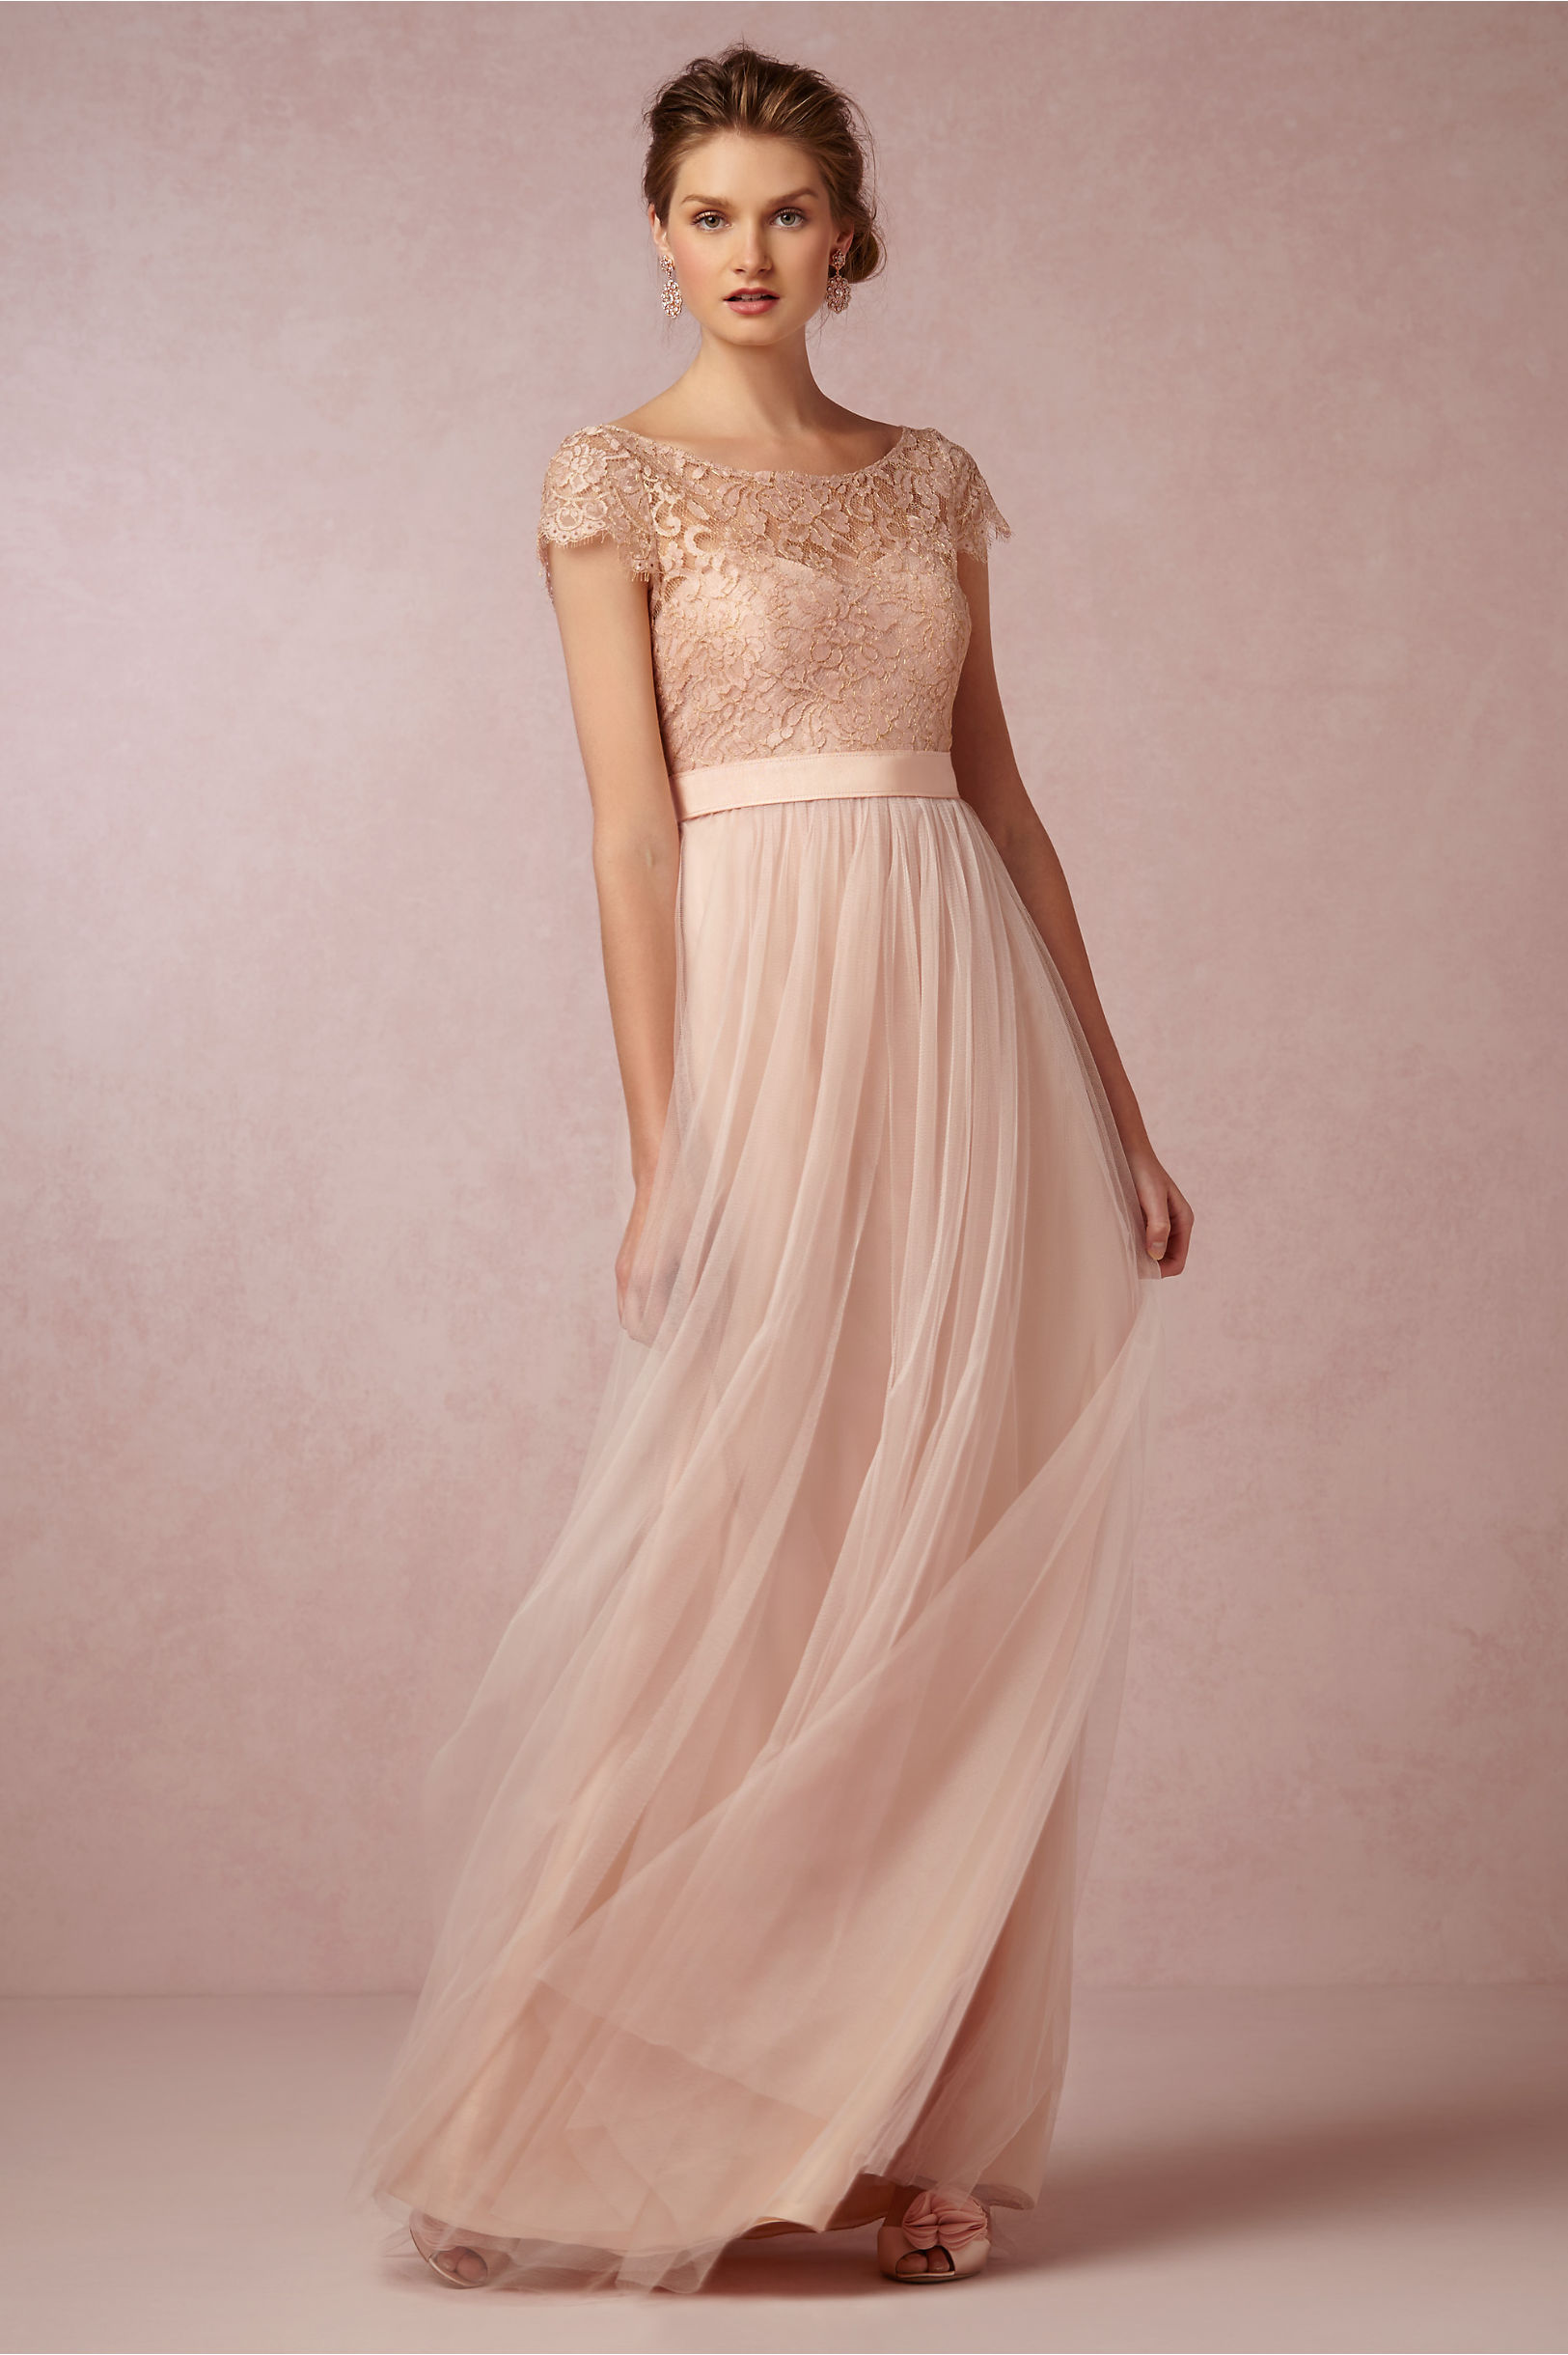 My BHLDN dresses are supposed to come today! Show me pictures!